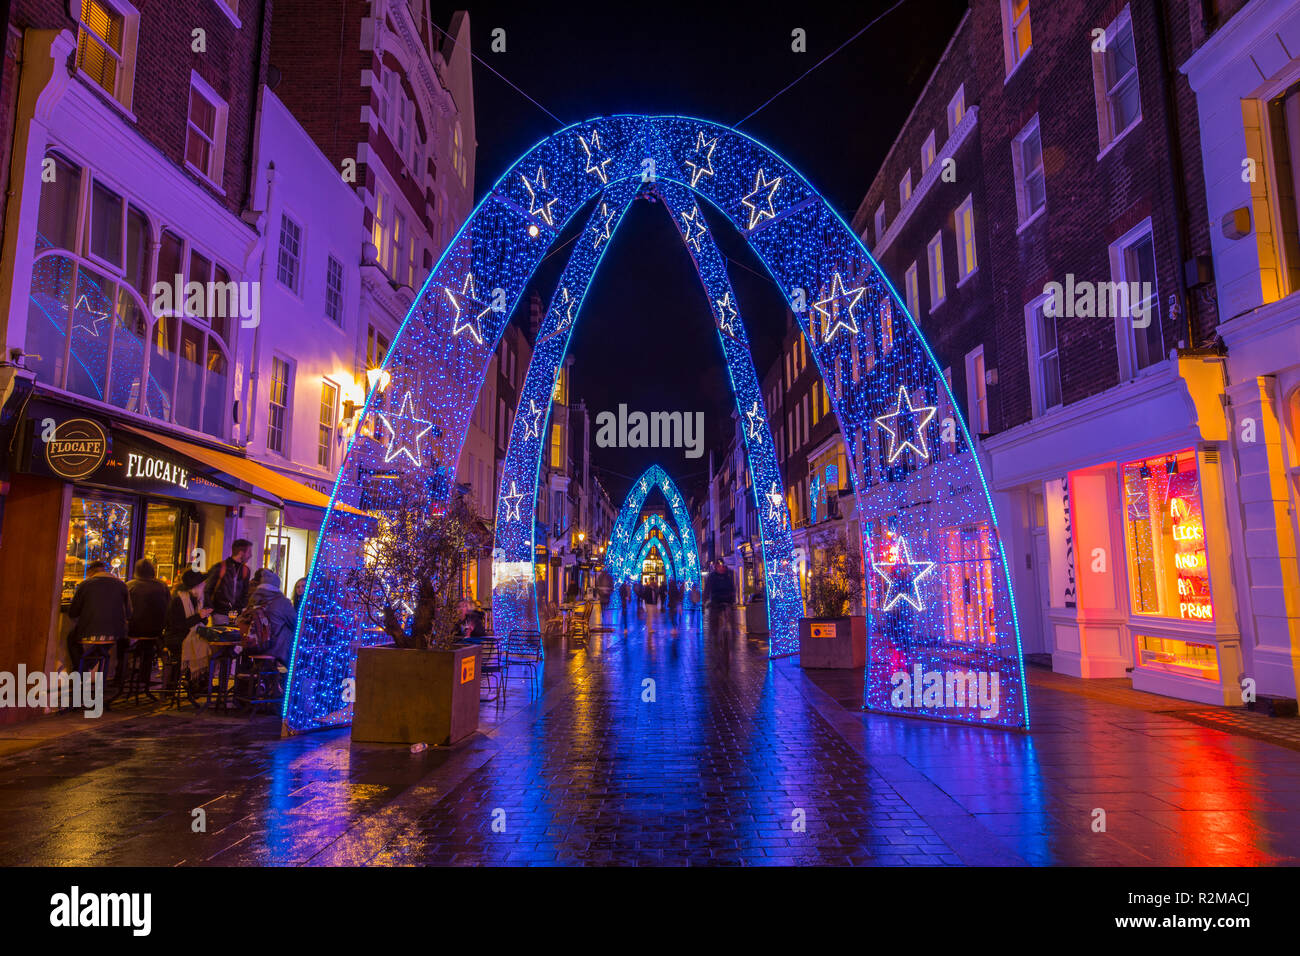 London, UK - November 19th 2018: A view of the festive Christmas lights on South Molton Street in central London. - Stock Image